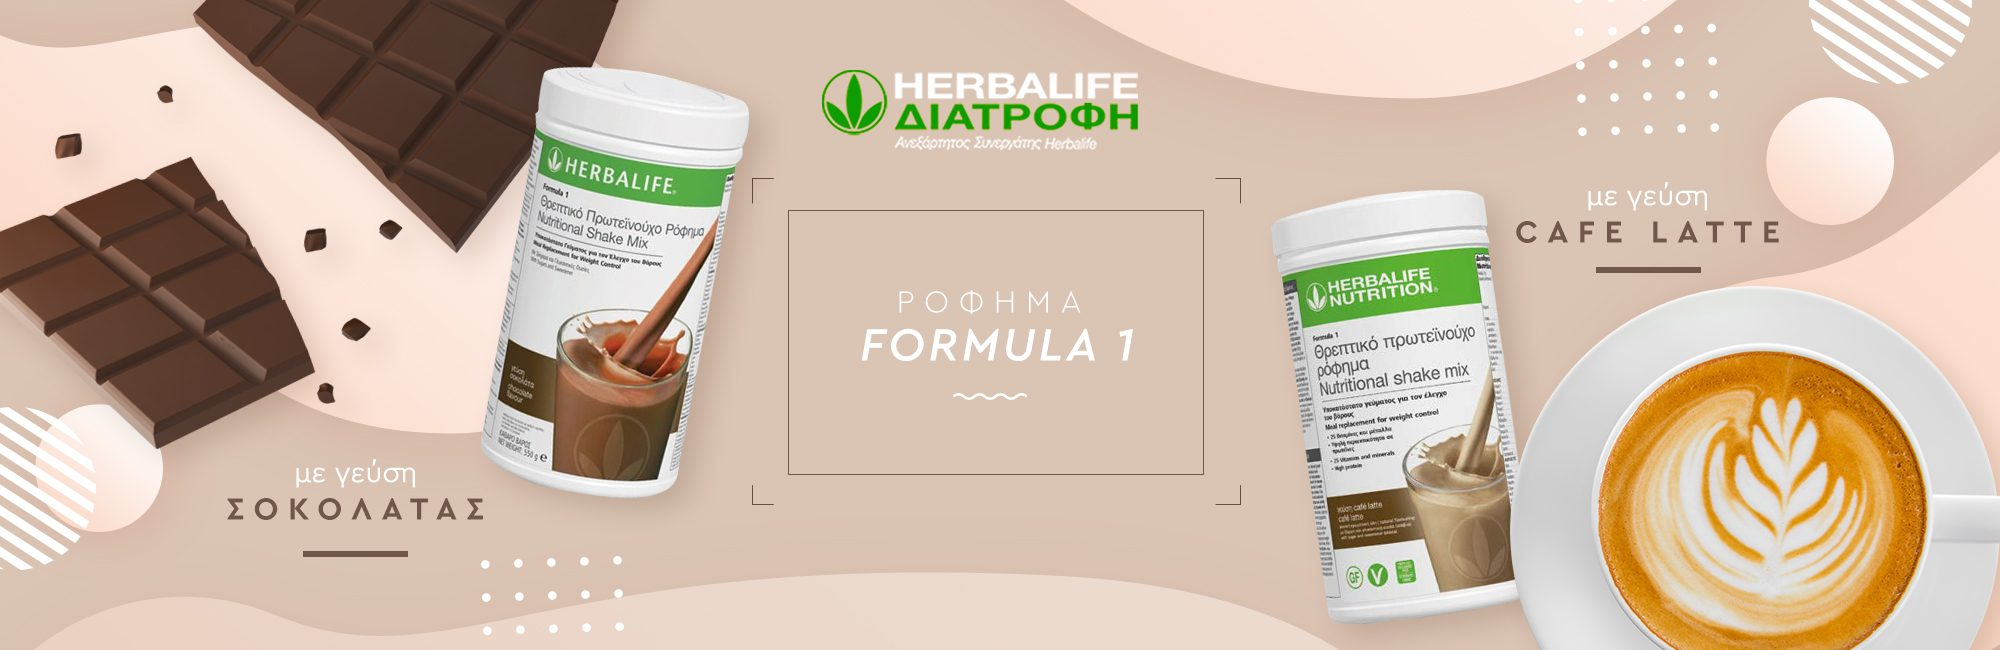 herbalife-banners-2000x650-chocolate